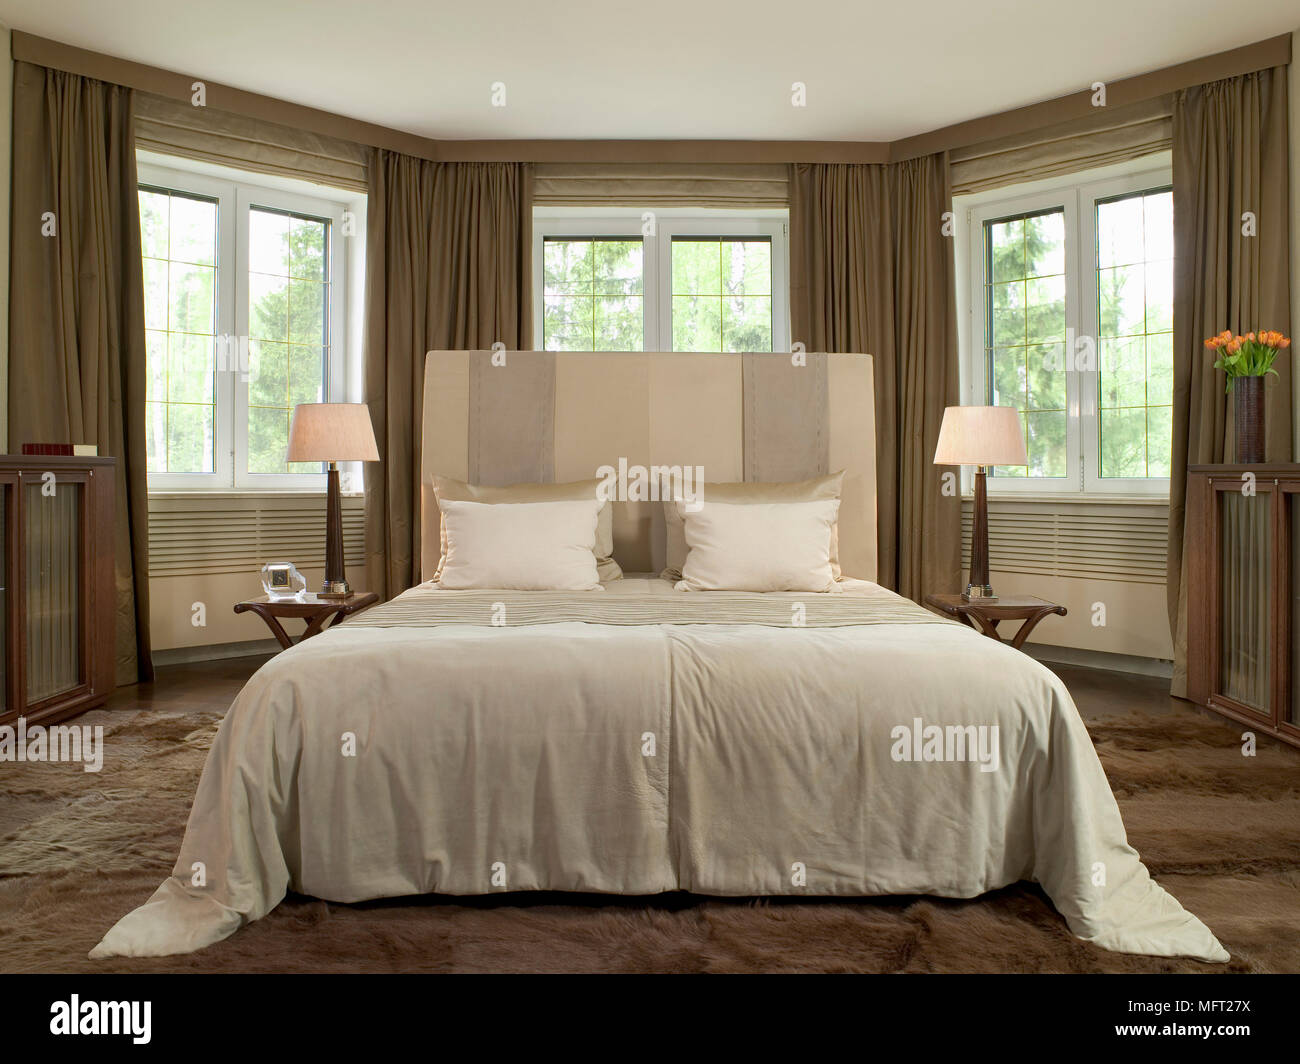 Headboards In Front Of Windows Master Bedroom With Double Bed With Headboard On Carpet And In